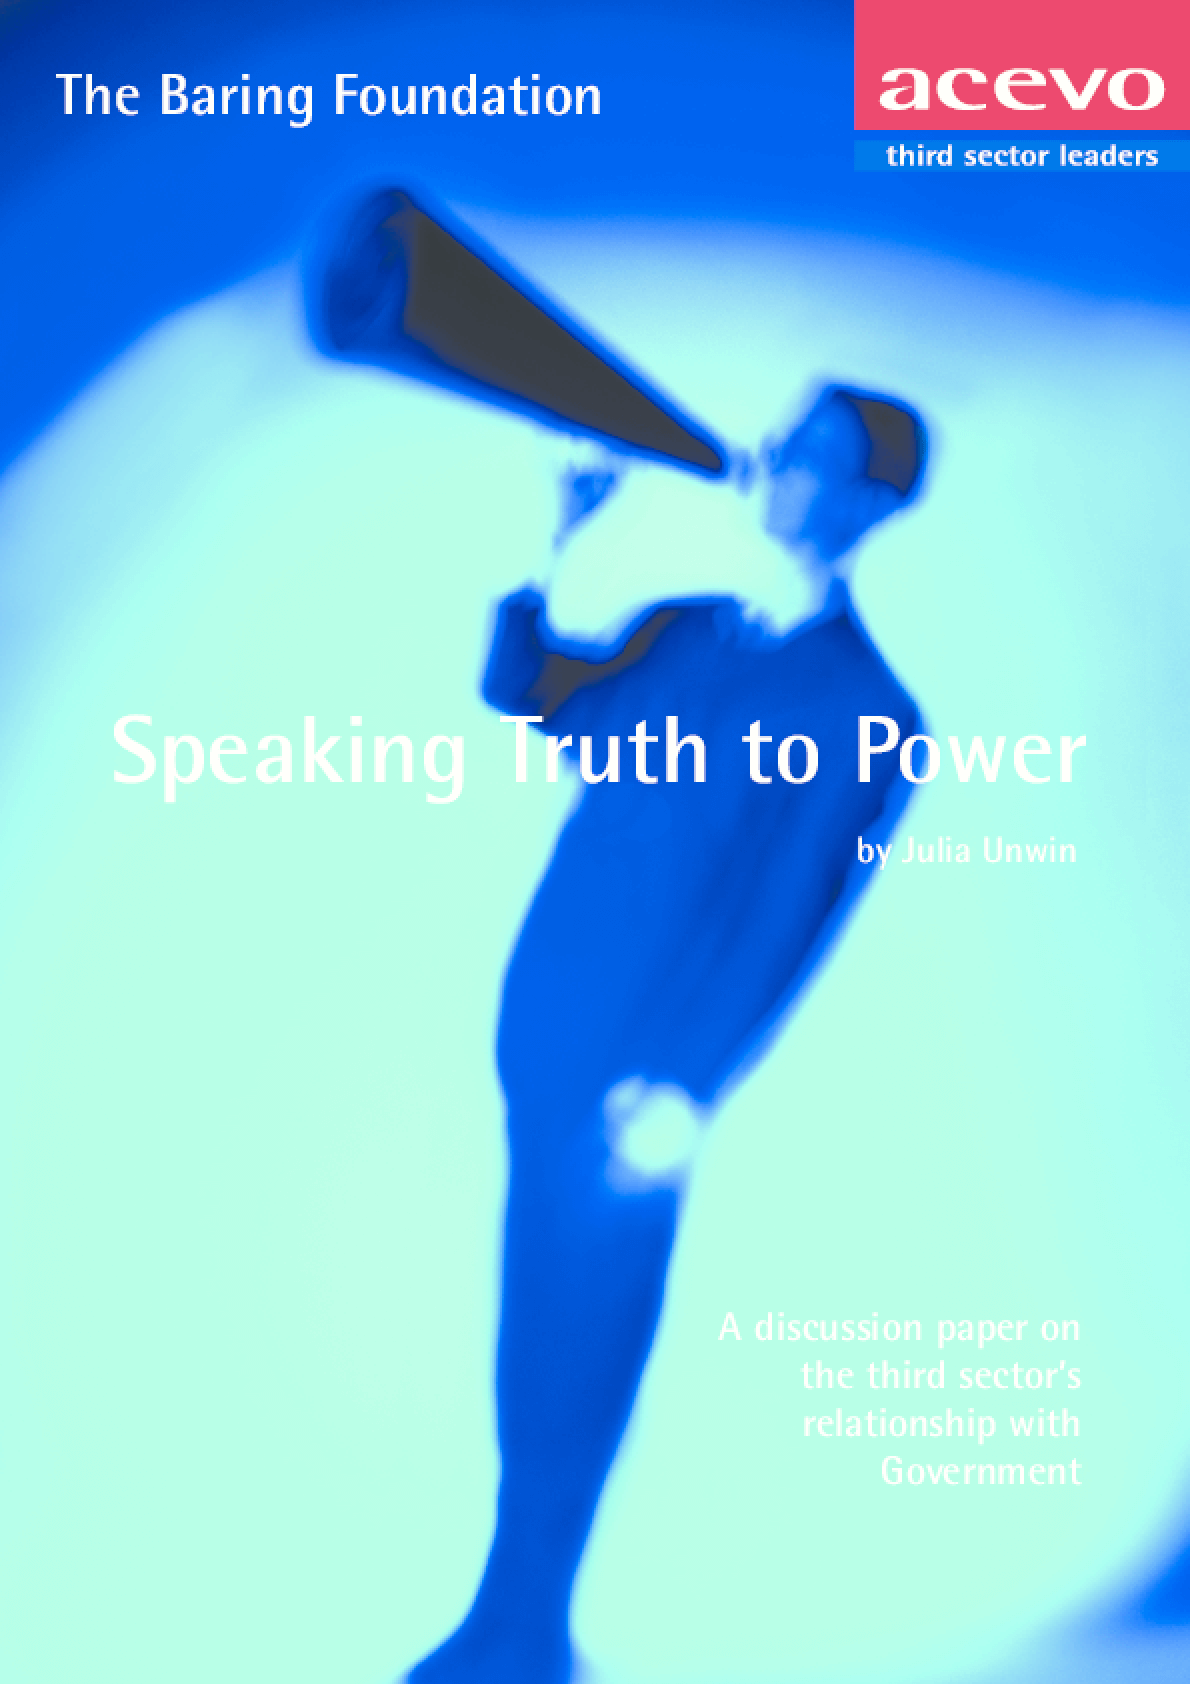 speaking the truth essays Instead, speaking the truth in love, we will grow to become in every respect the mature body of him who is the head, that is, christ - (ephesians 4:15, niv) no, we will speak the truth with love.